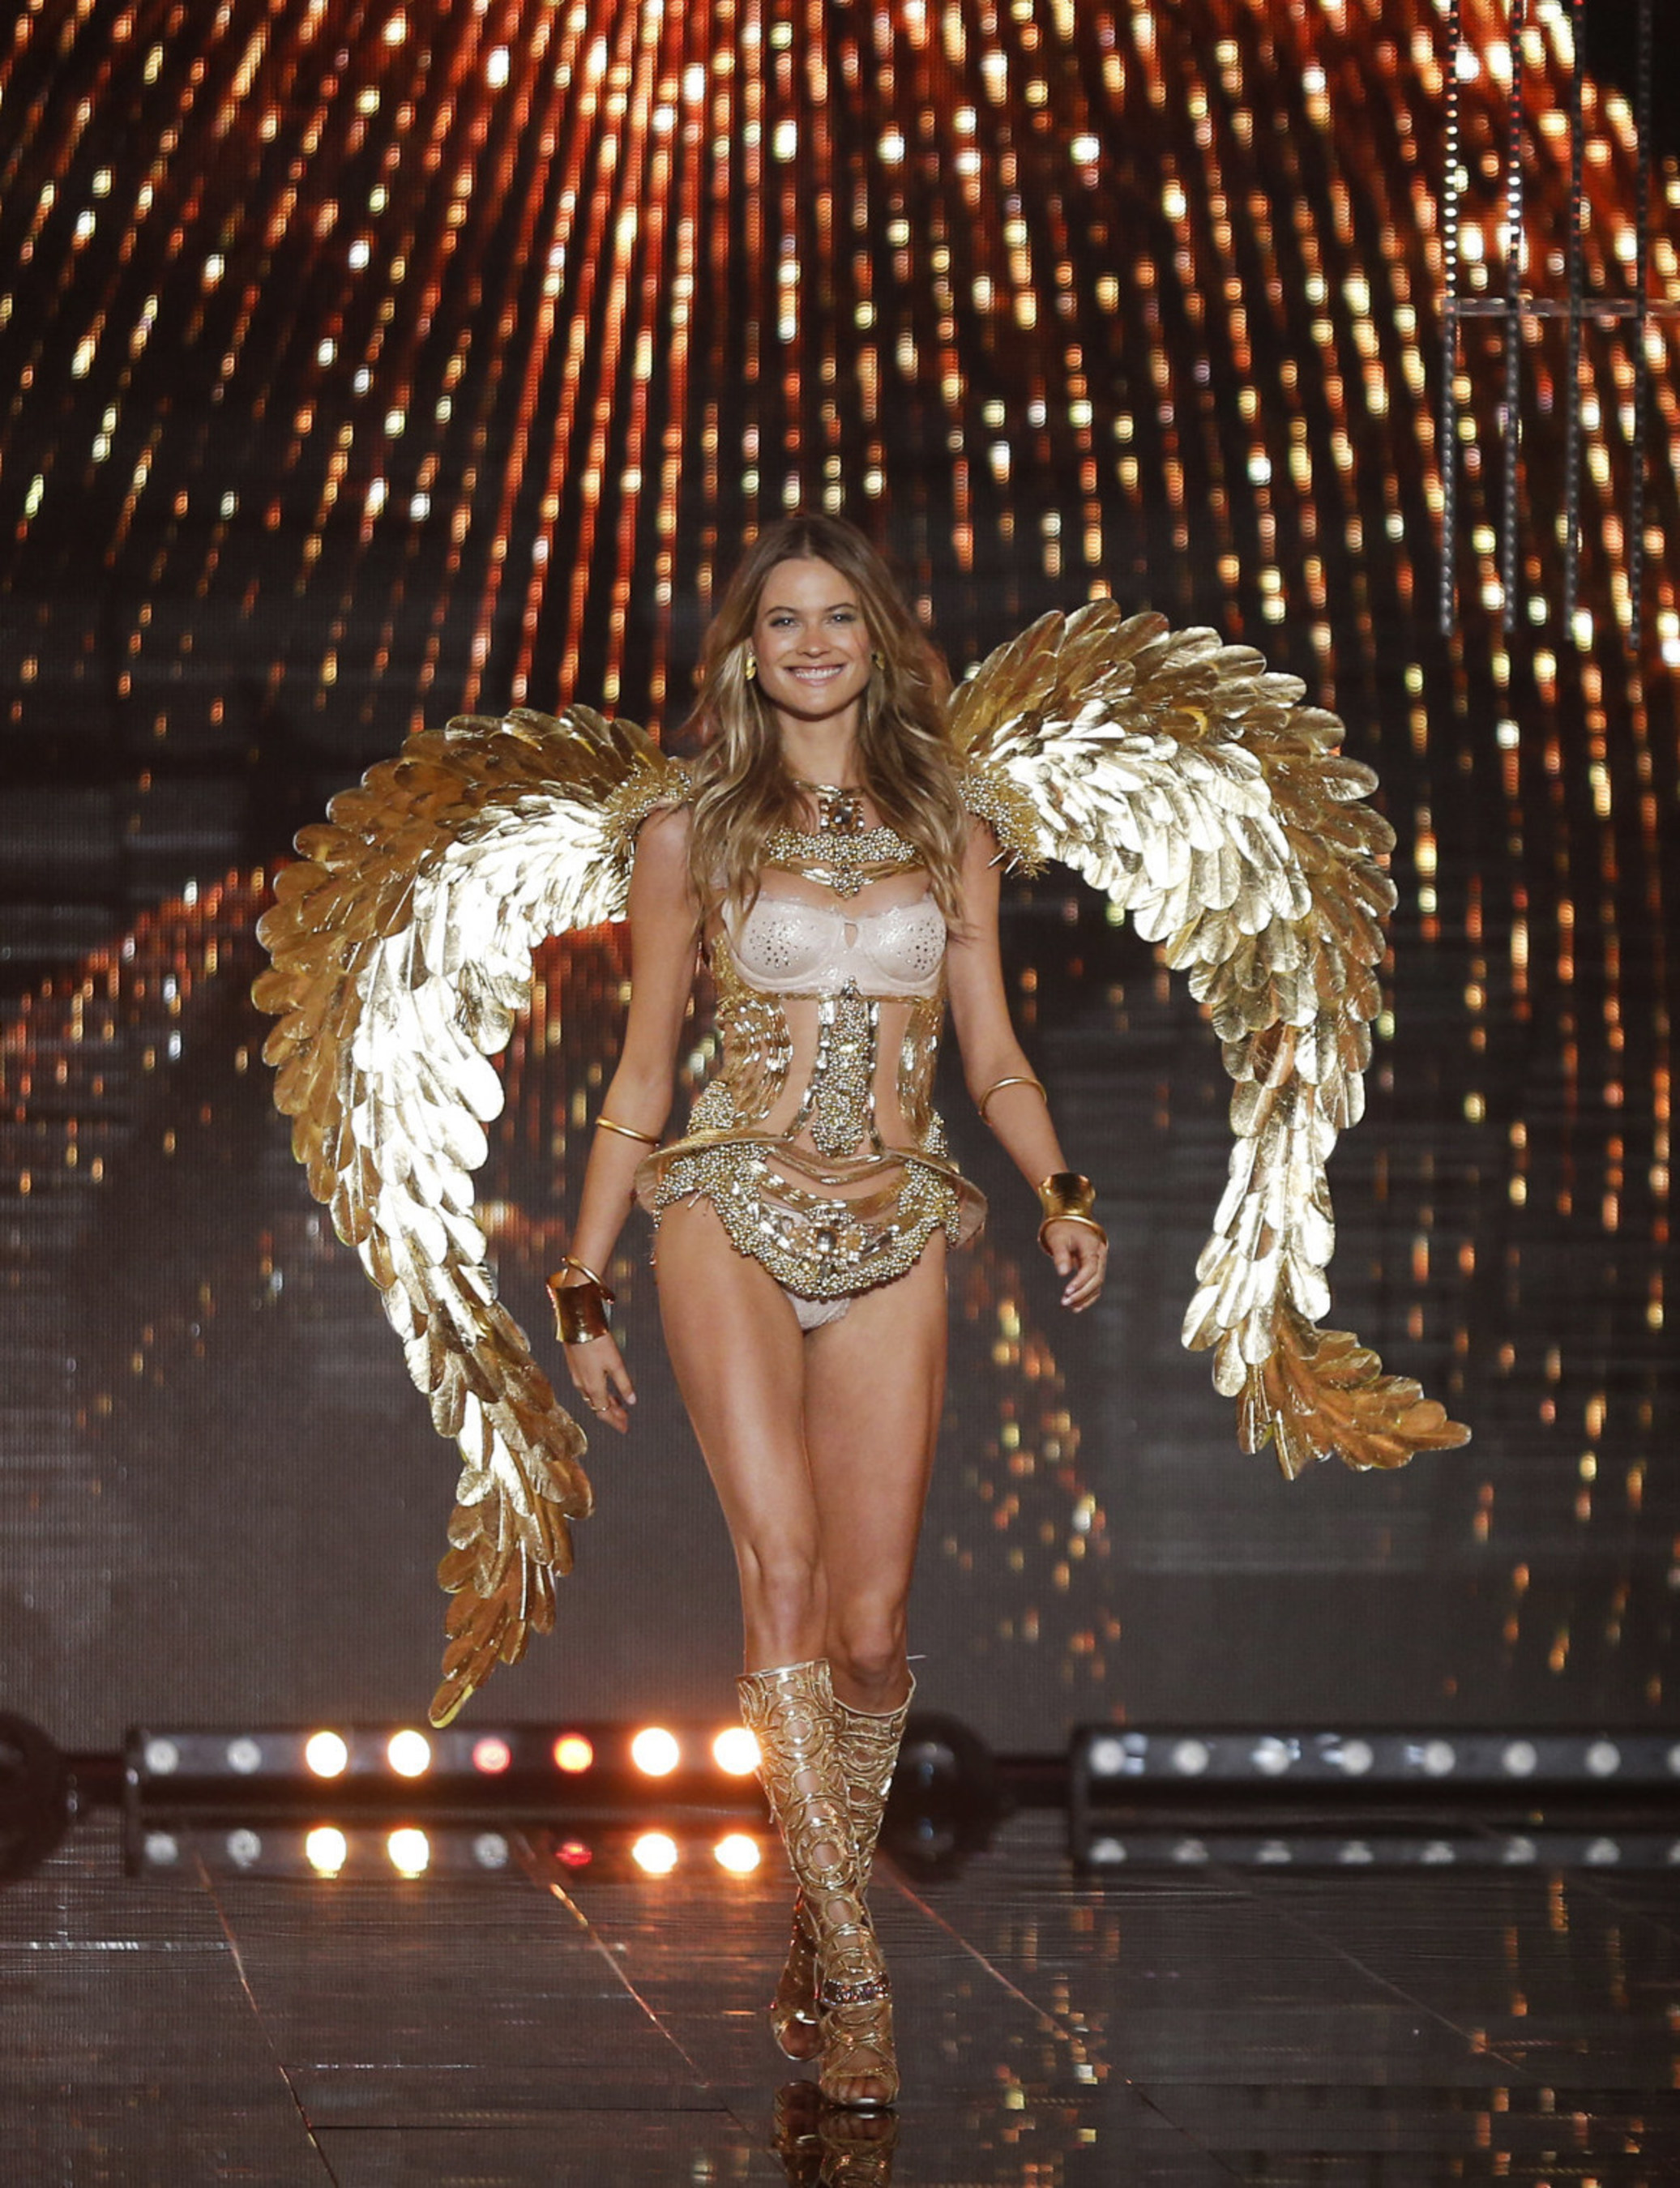 'The Victoria's Secret Fashion Show' Returns To New York City, Tuesday, Dec. 8 On CBS